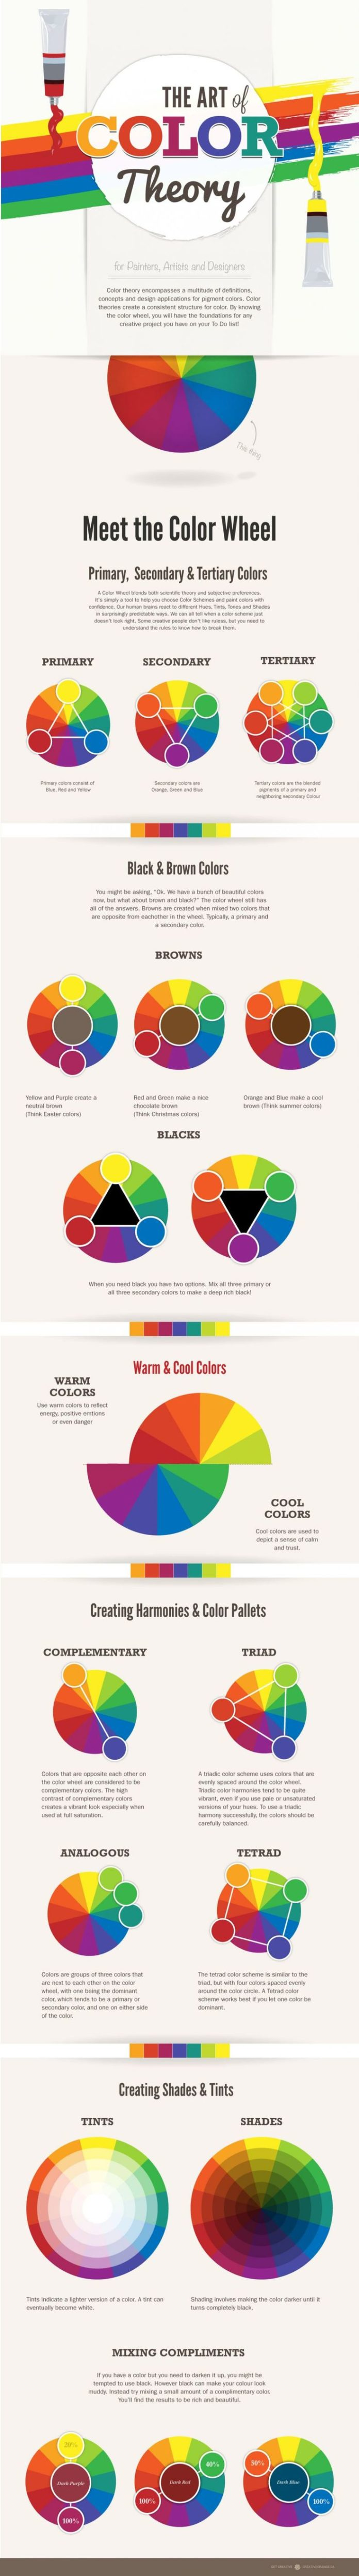 Psychology Infographic The Art Of Color Theory The Color Wheel